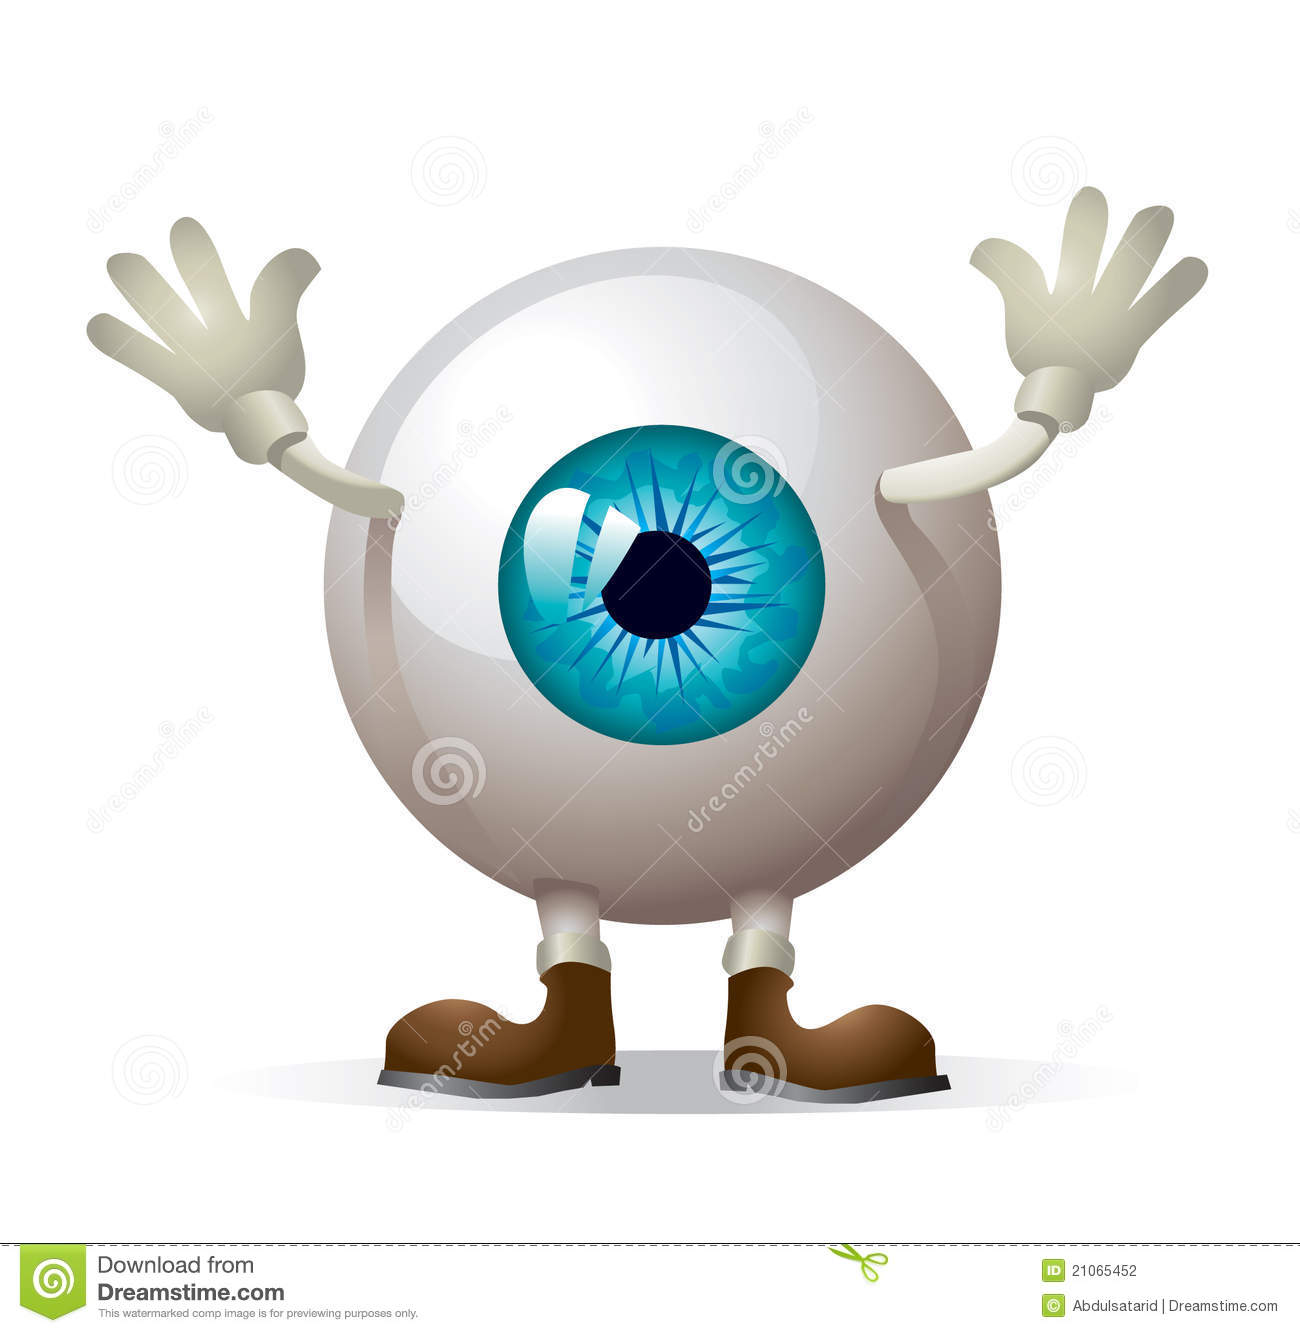 Eye Illustration Stock graphy Image